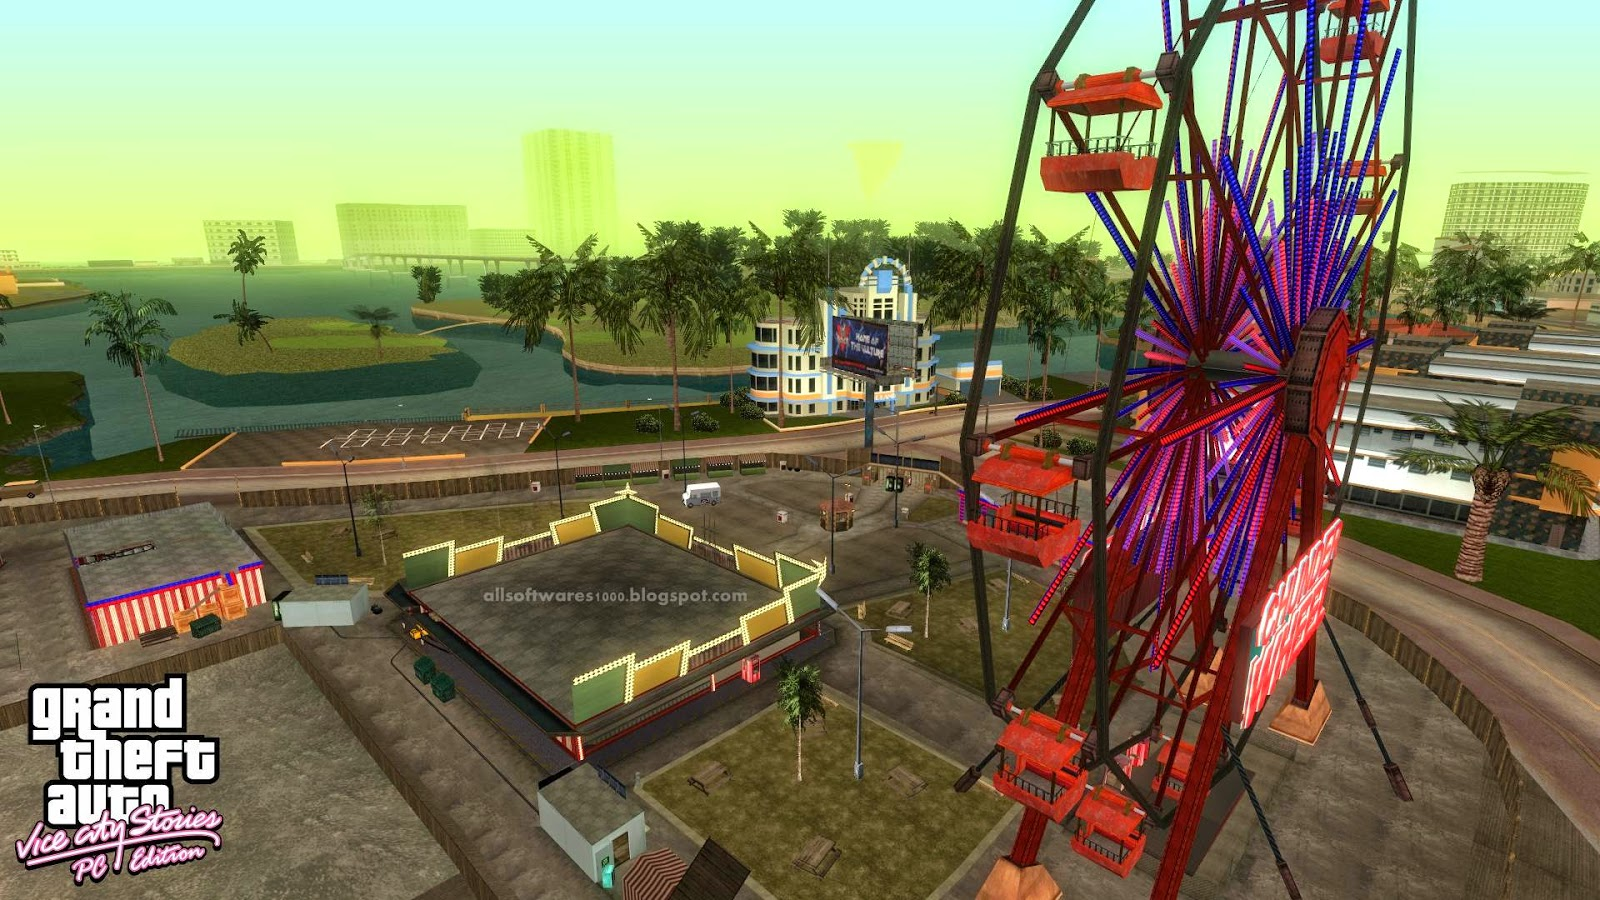 Gta vice city ultimate stunter trainer + free download link youtube.